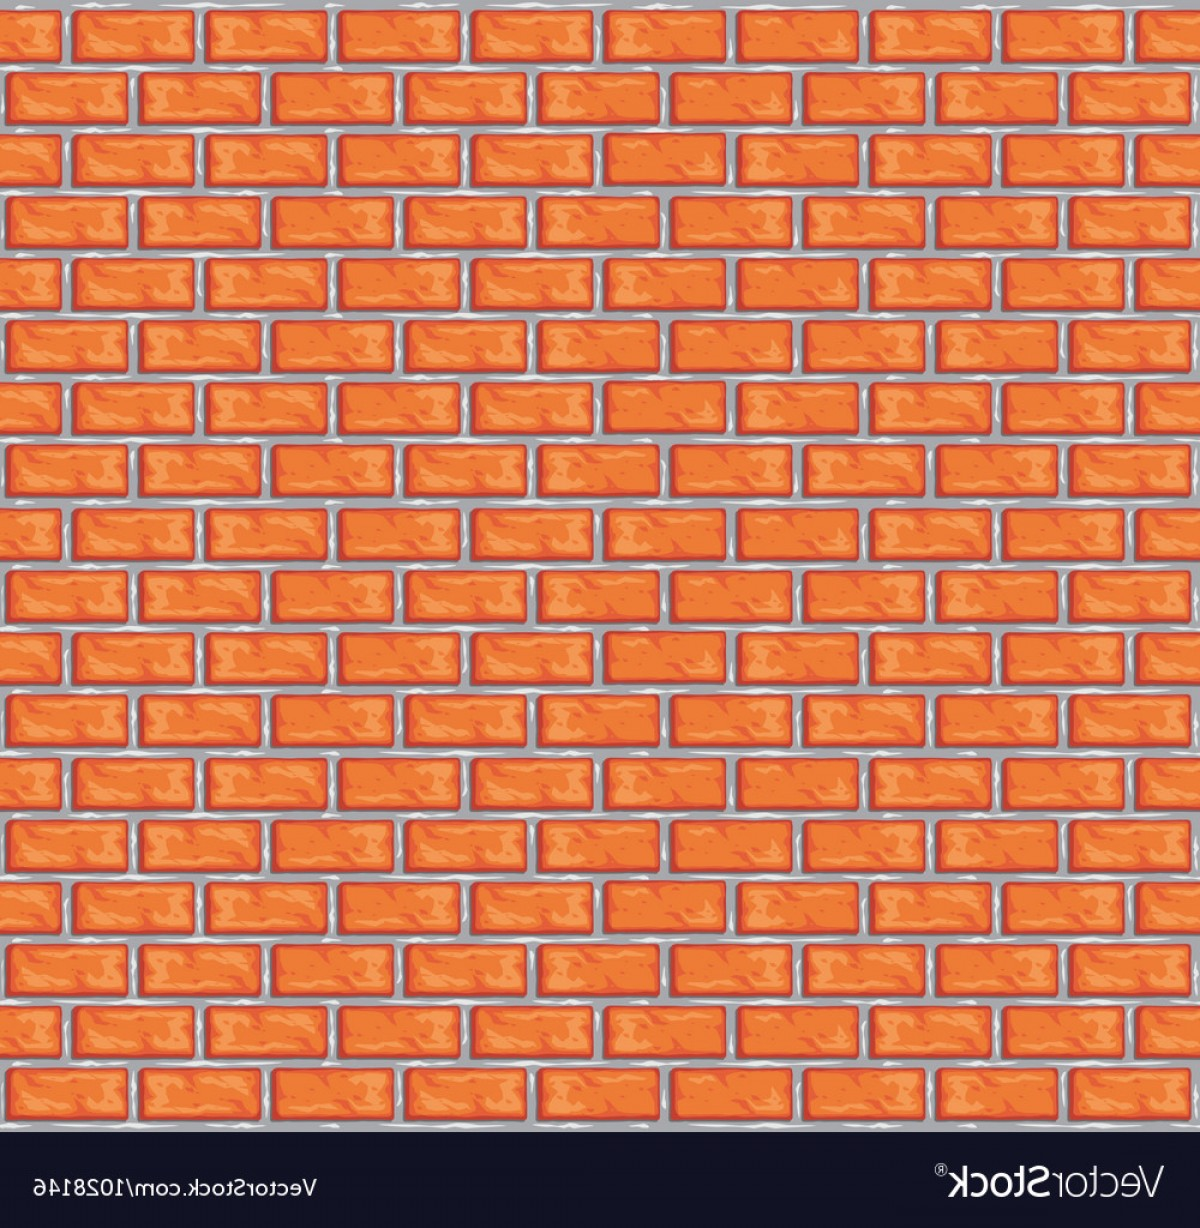 Wall Background Vector: Orange Brick Wall Background Vector